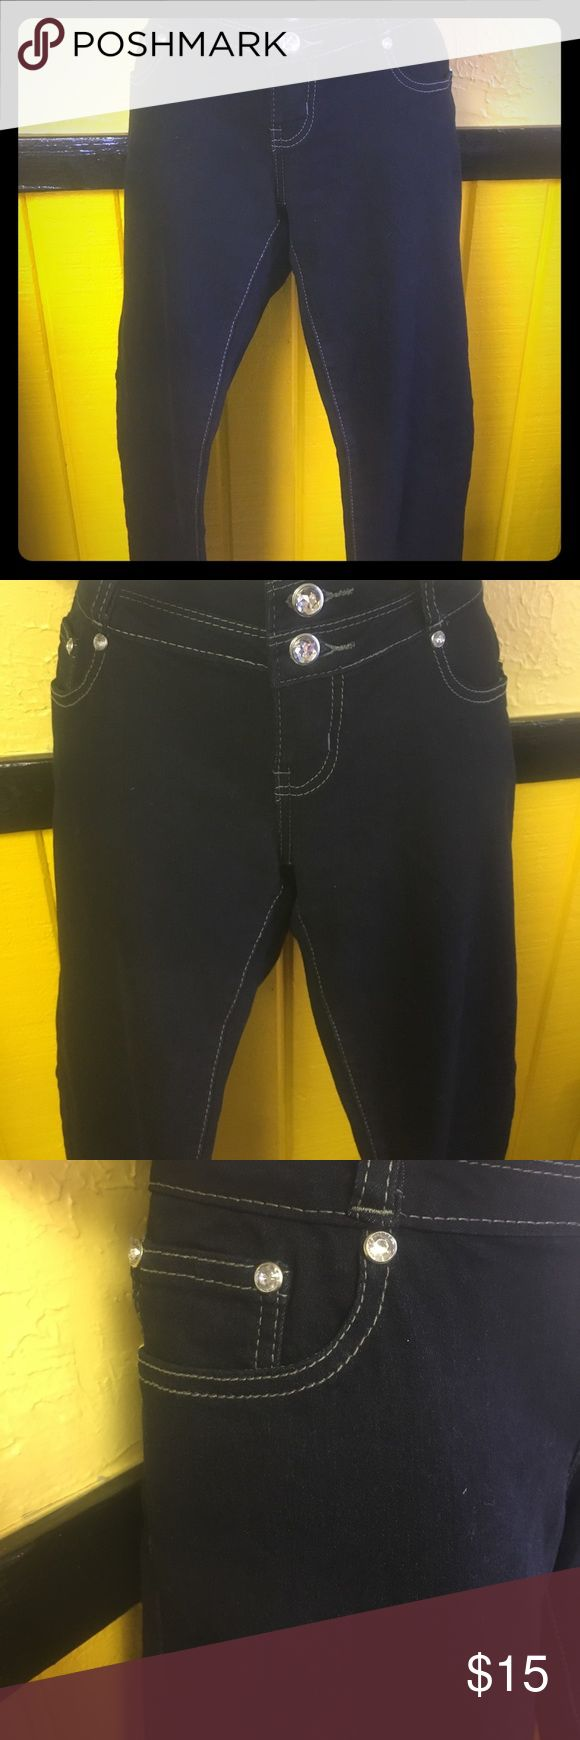 Women's Jeans Women's dark Jeans bling 3 Button closure with zipper straight leg cotton,Polyester,Spandex Material high waisted jeans 4 pockets great looking jeans @ a great price Richcow Jeans Straight Leg